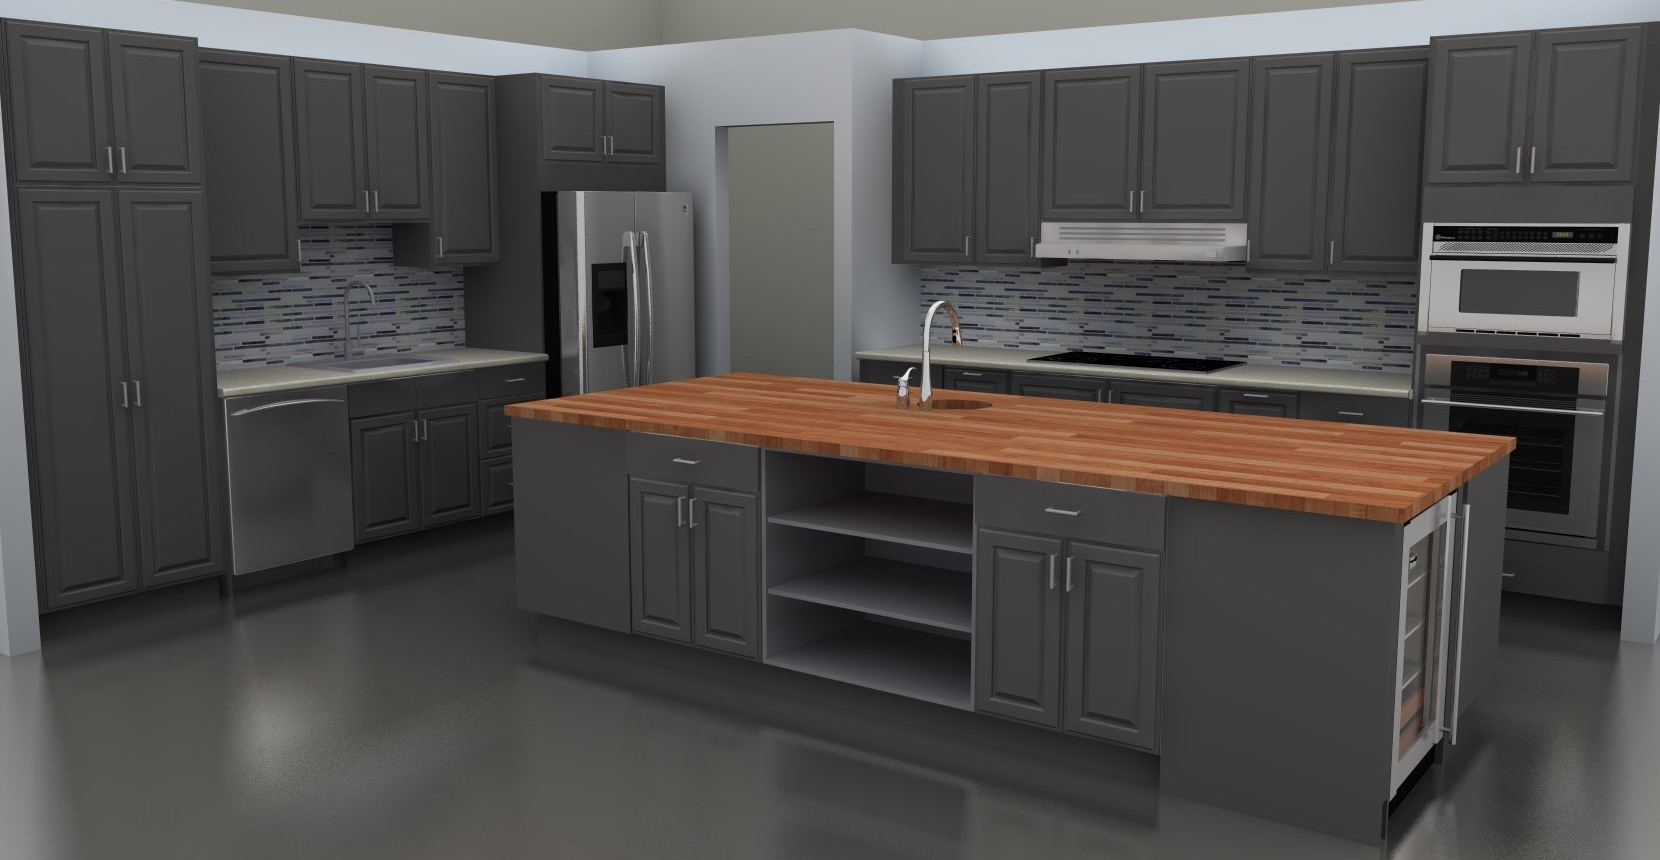 Stylish lidingo gray doors for a new ikea kitchen for Kitchen cabinets at ikea